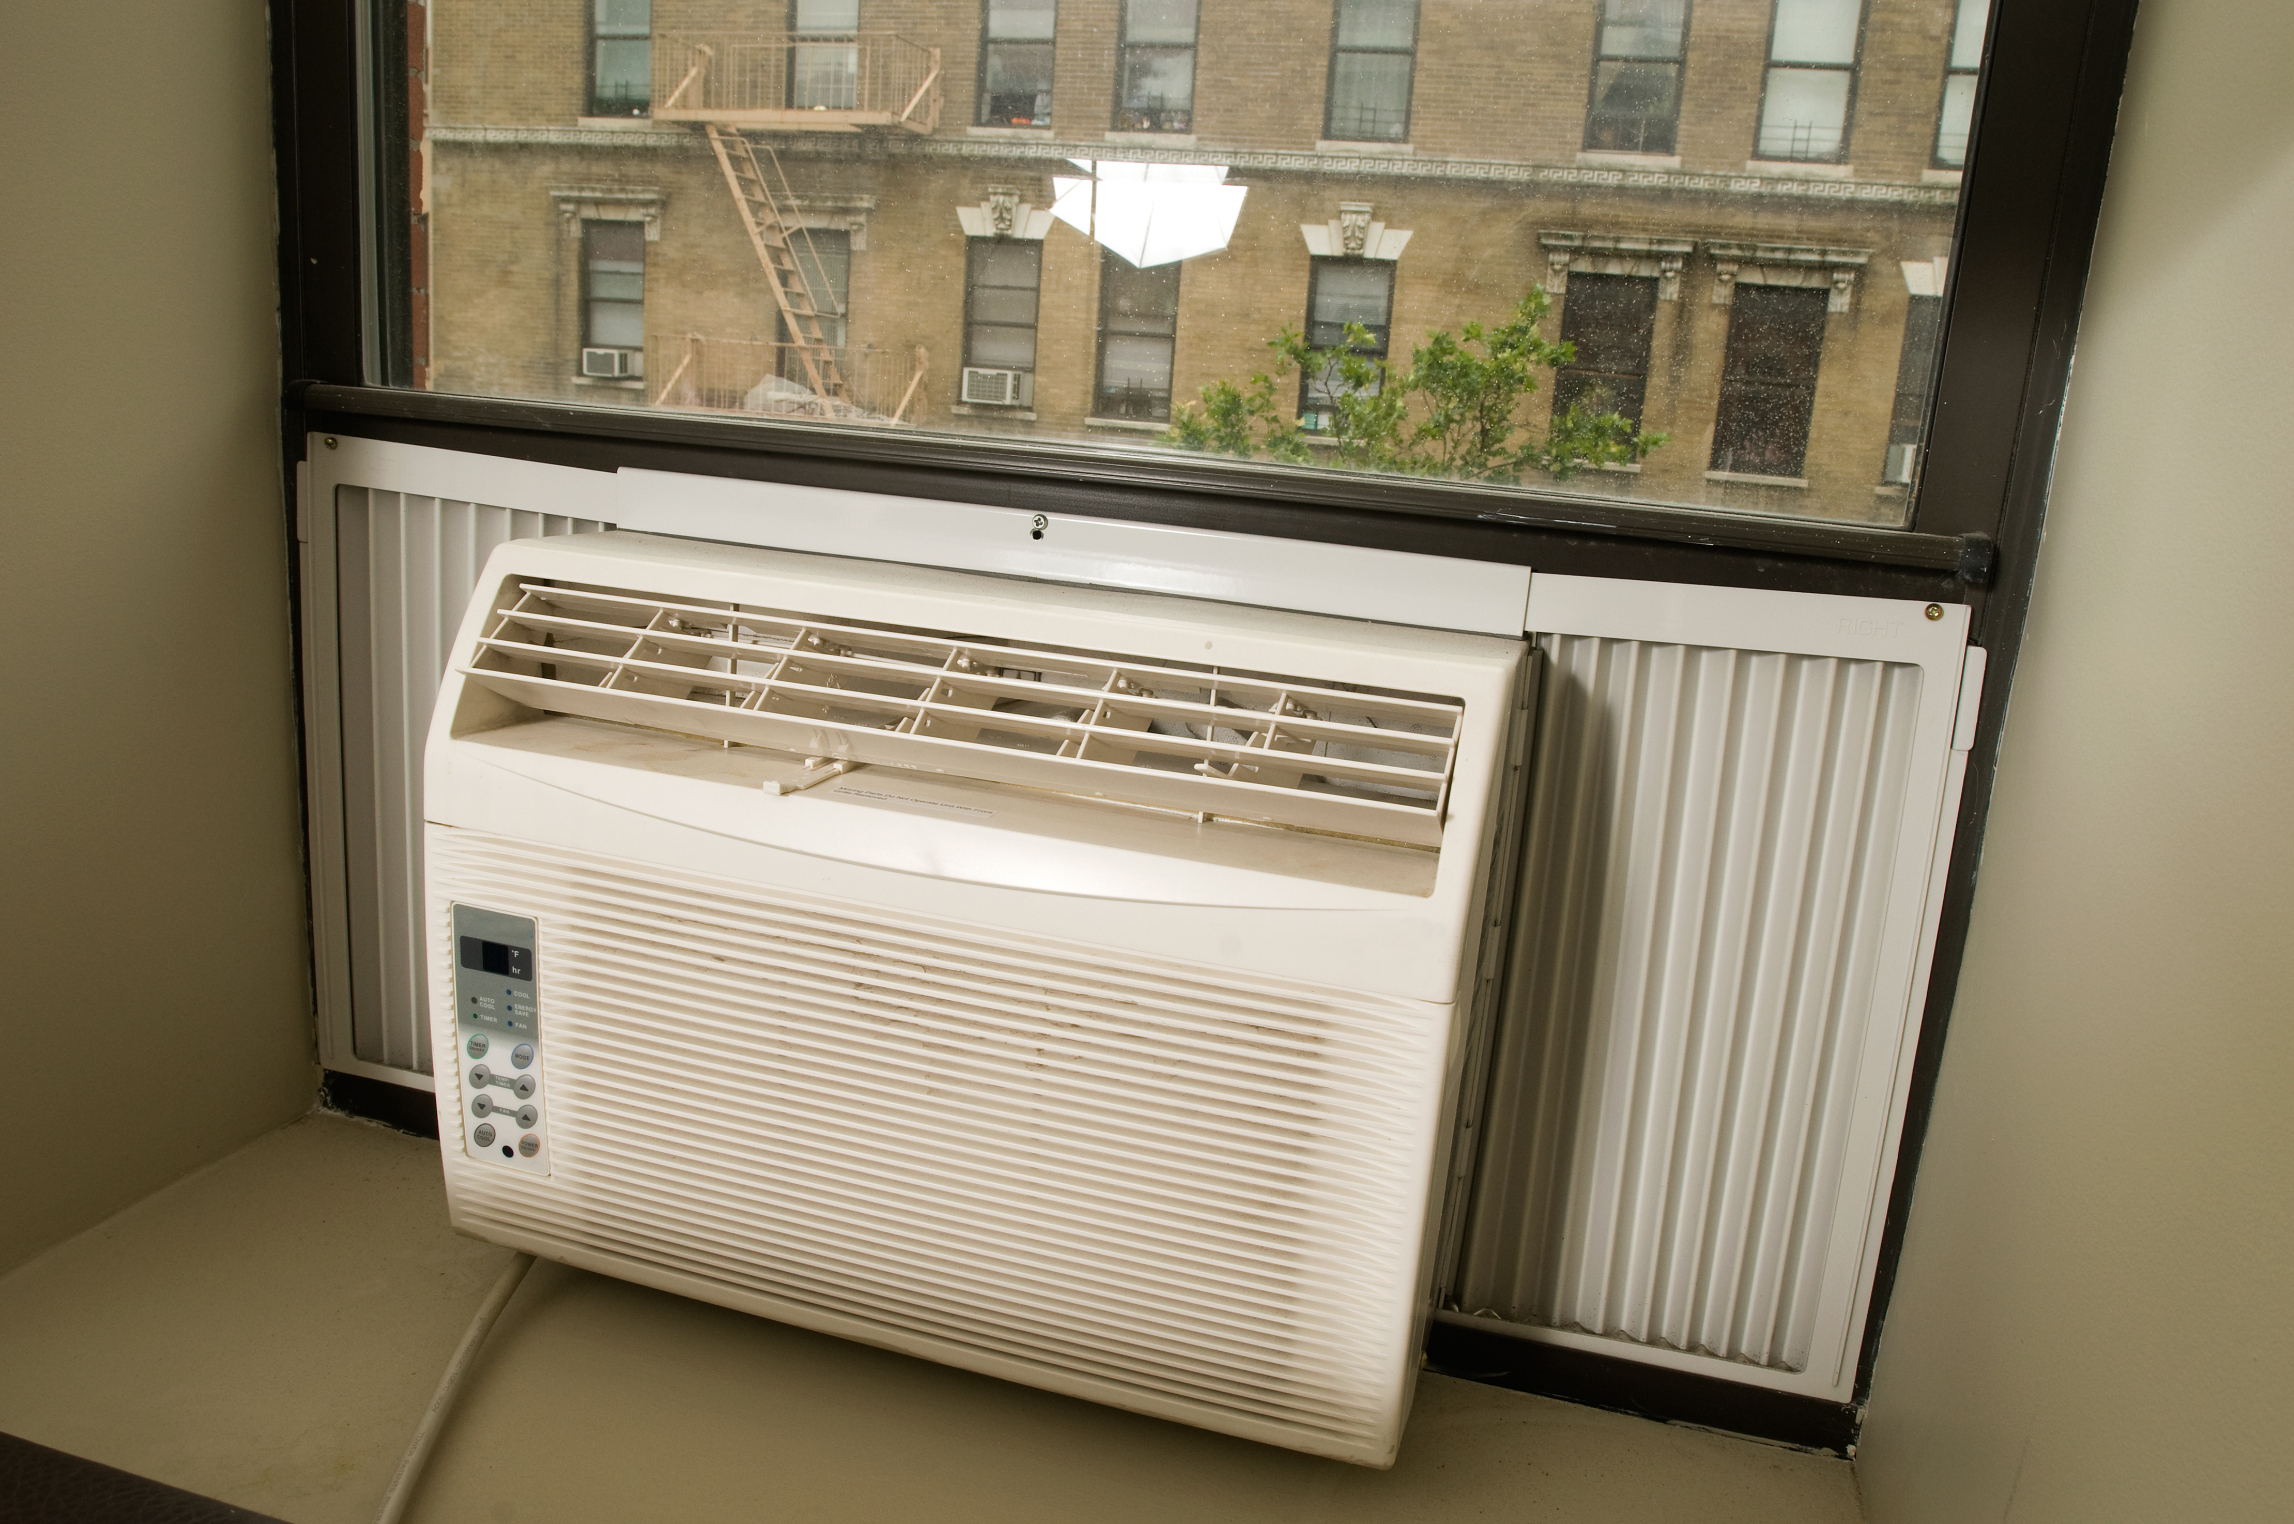 Inline Air Conditioner : Most common problems in installing a window air